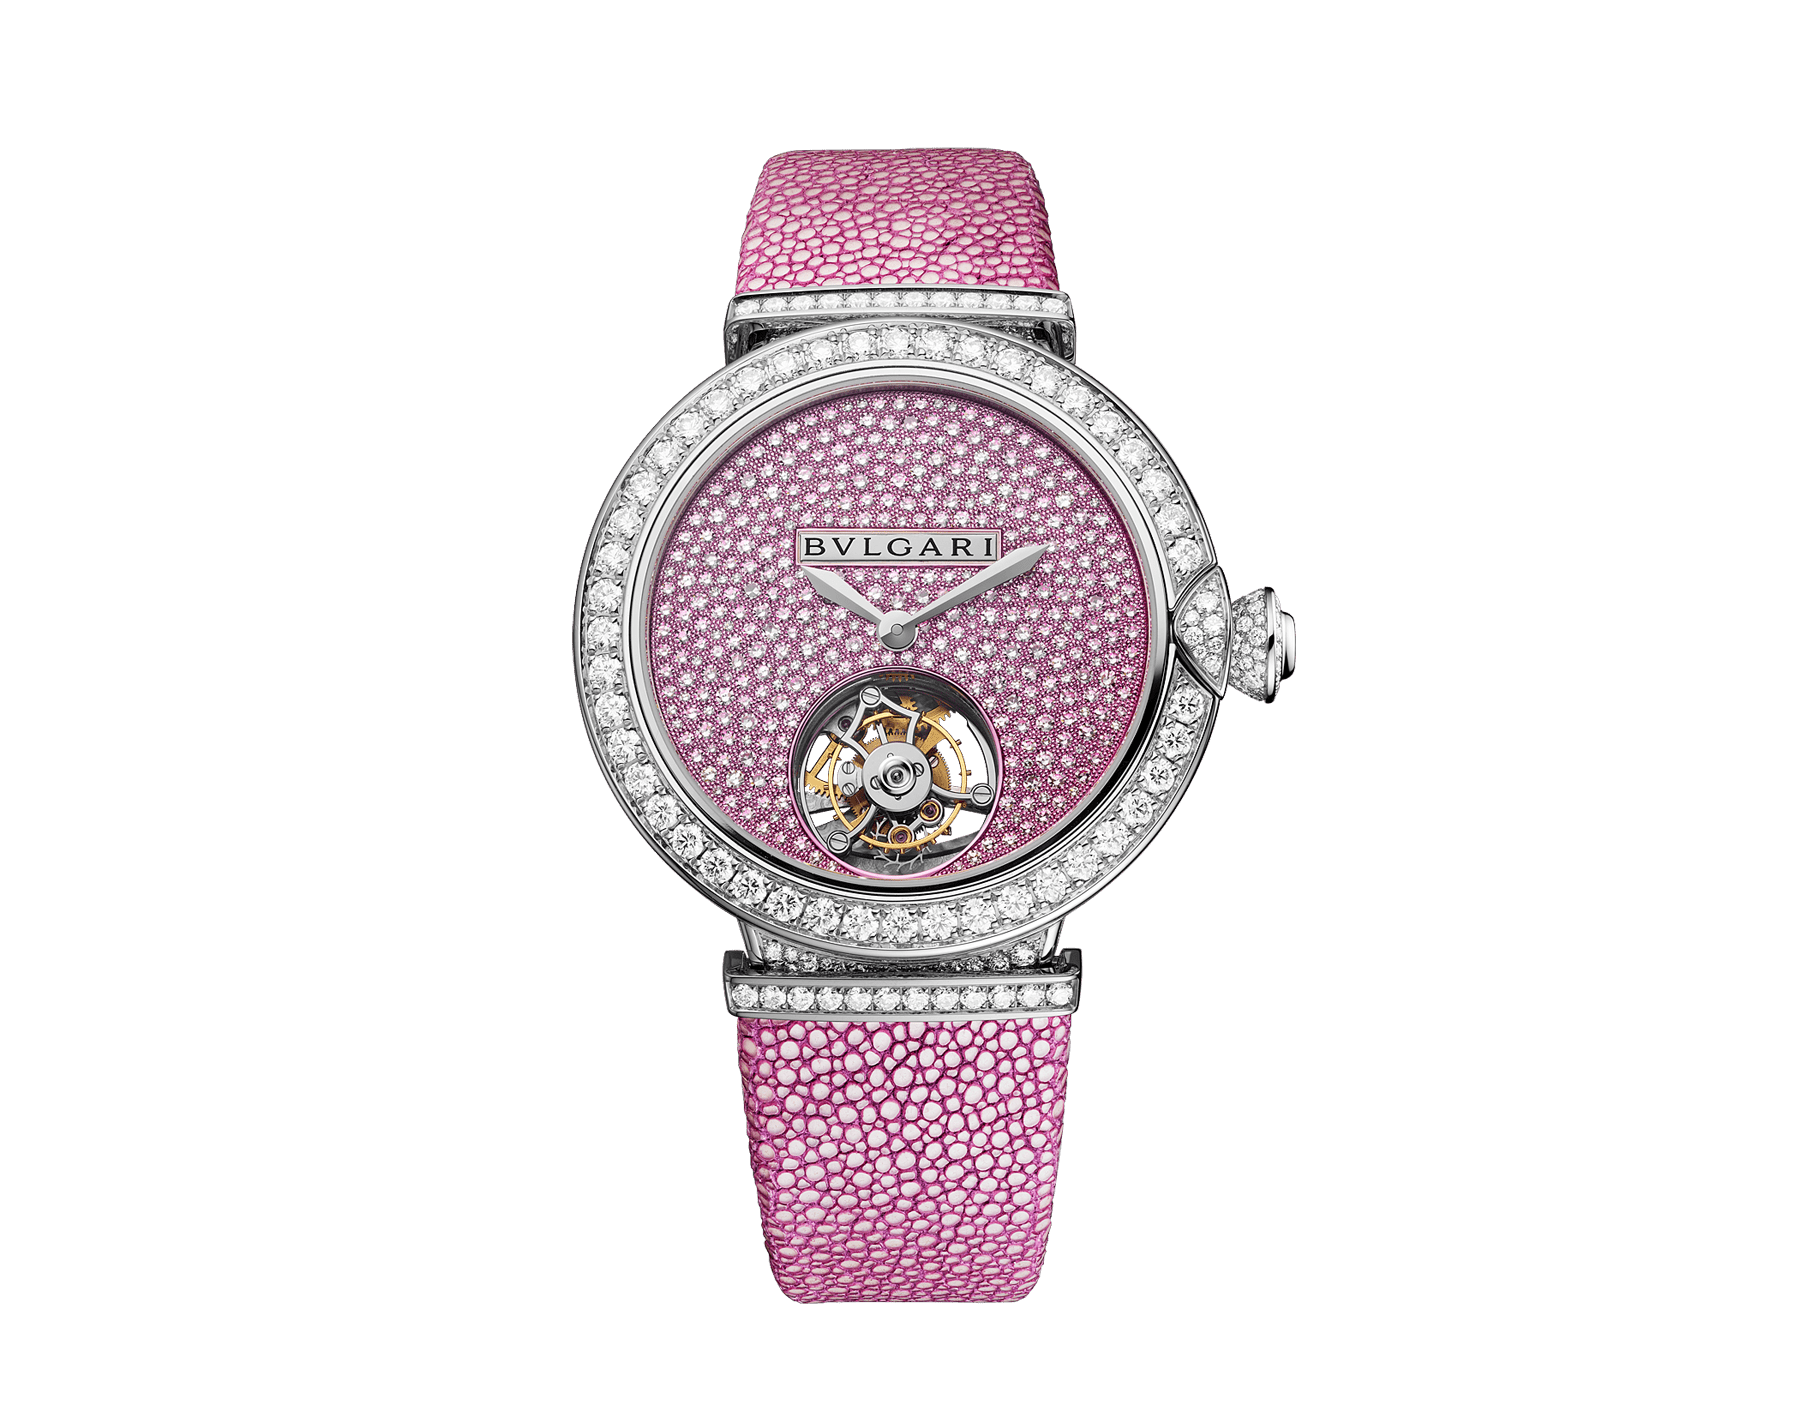 LVCEA Tourbillon Limited Edition watch with mechanical manufacture movement, automatic winding, see-through tourbillon, 18 kt white gold case set with round brilliant-cut diamonds, full-pavé dial with round brilliant-cut diamonds and pink colour finish, and pink galuchat bracelet 102887 image 1